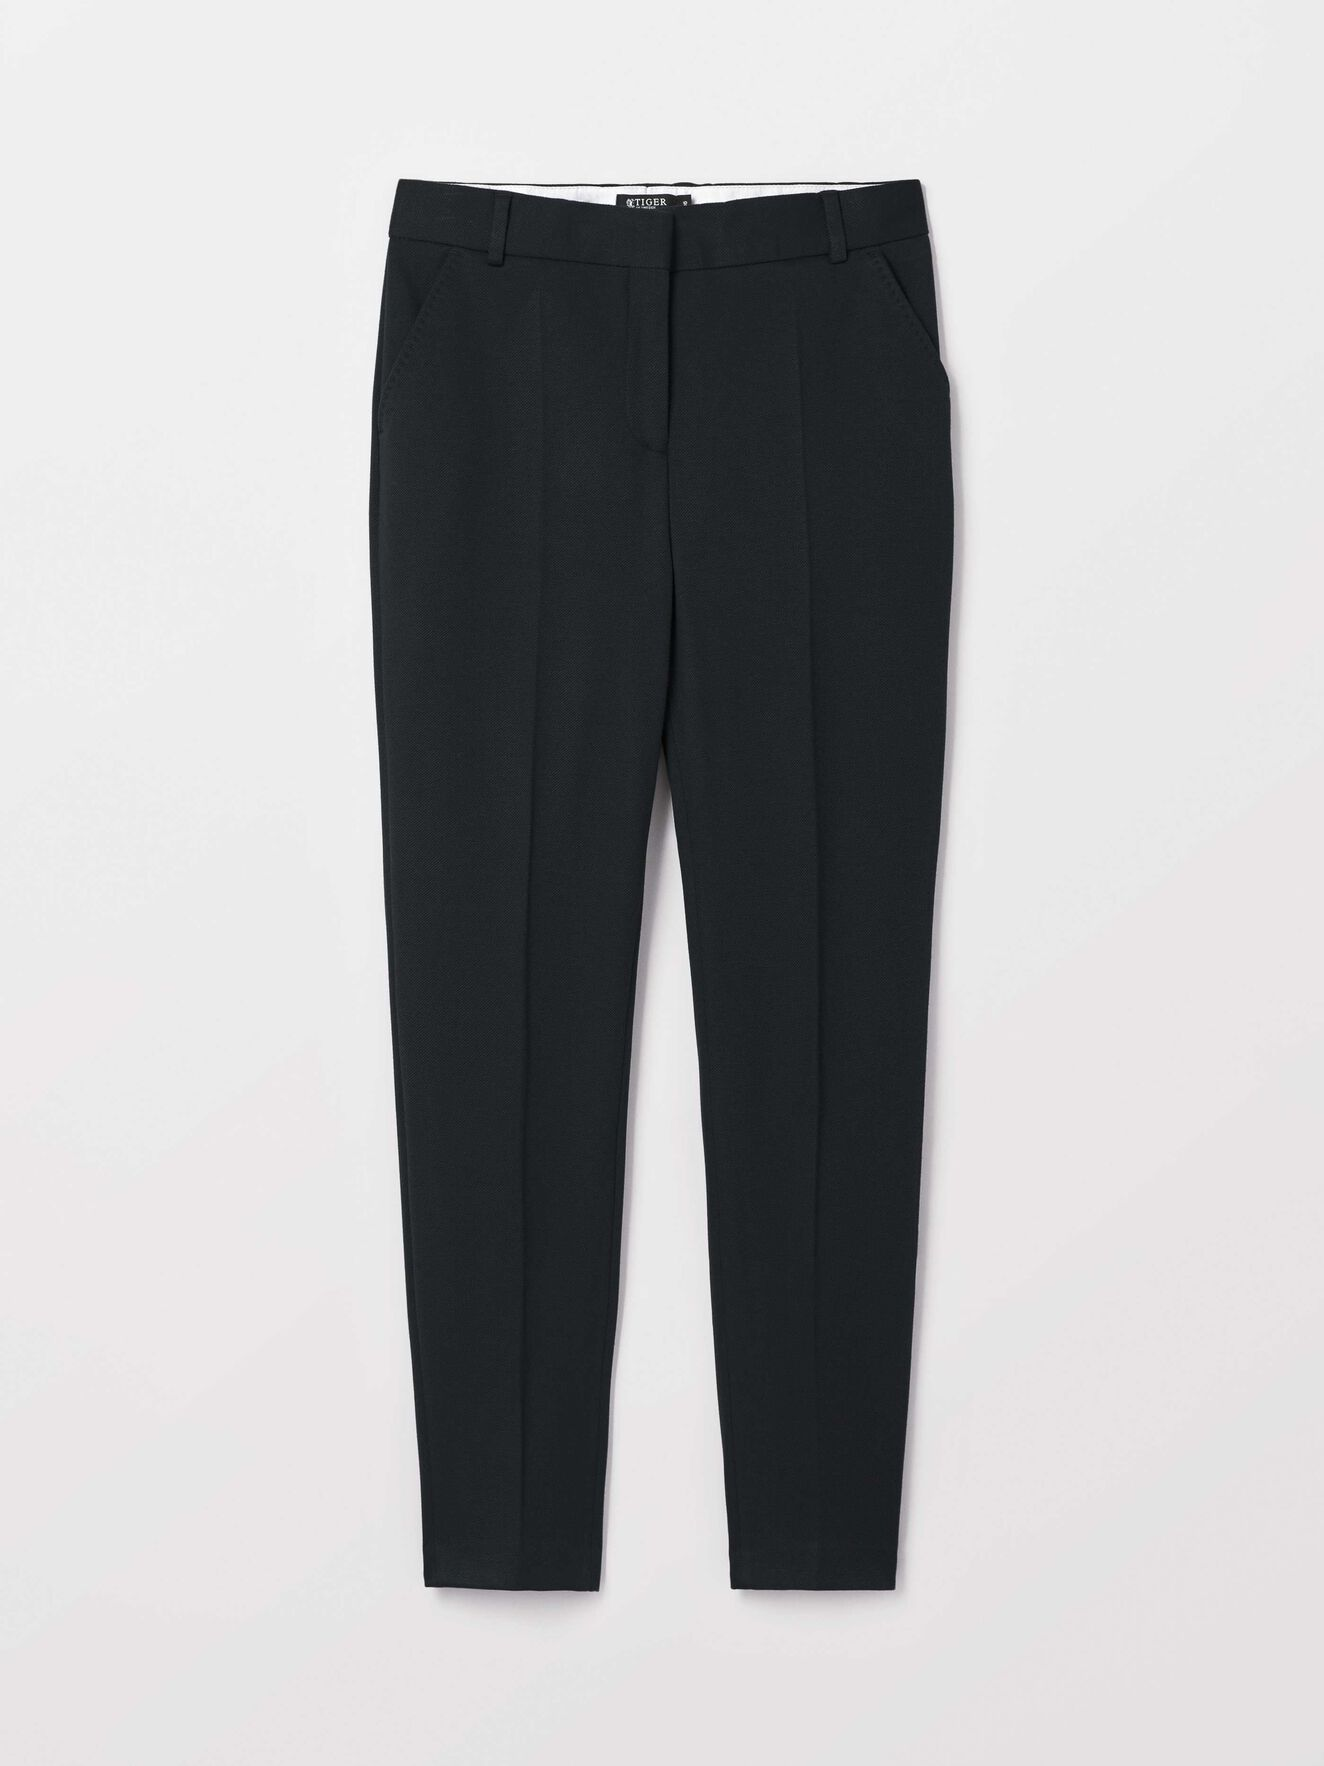 Blossom Trousers in Midnight Black from Tiger of Sweden